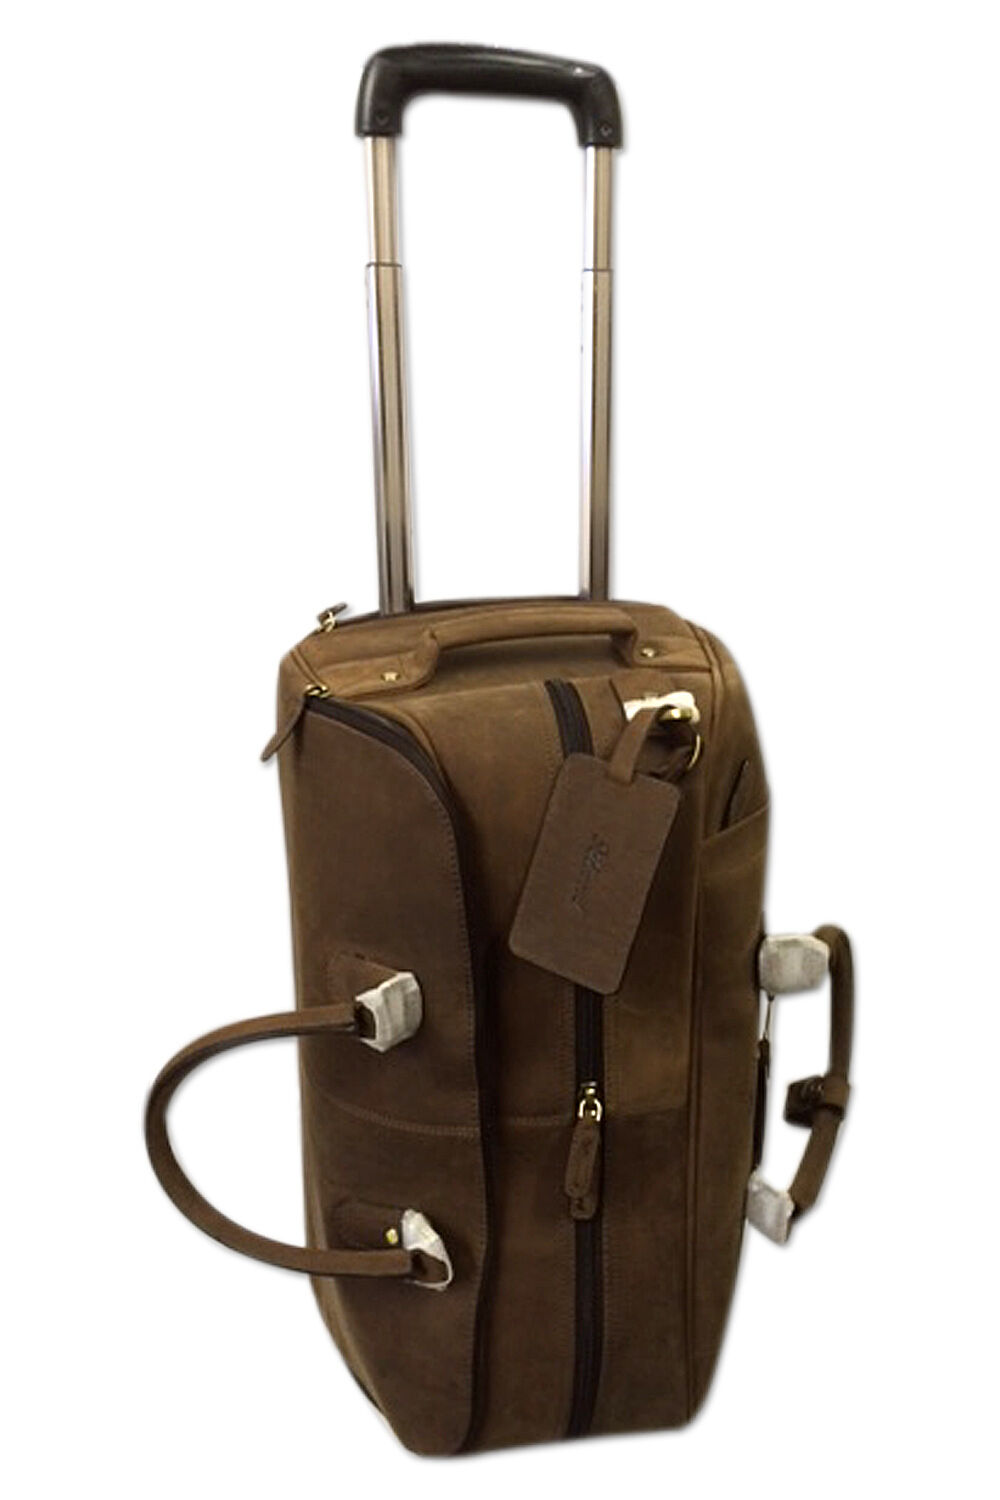 Real cuir voyage Holdall on Wtalons & Trolley handle Albert - Mud colour